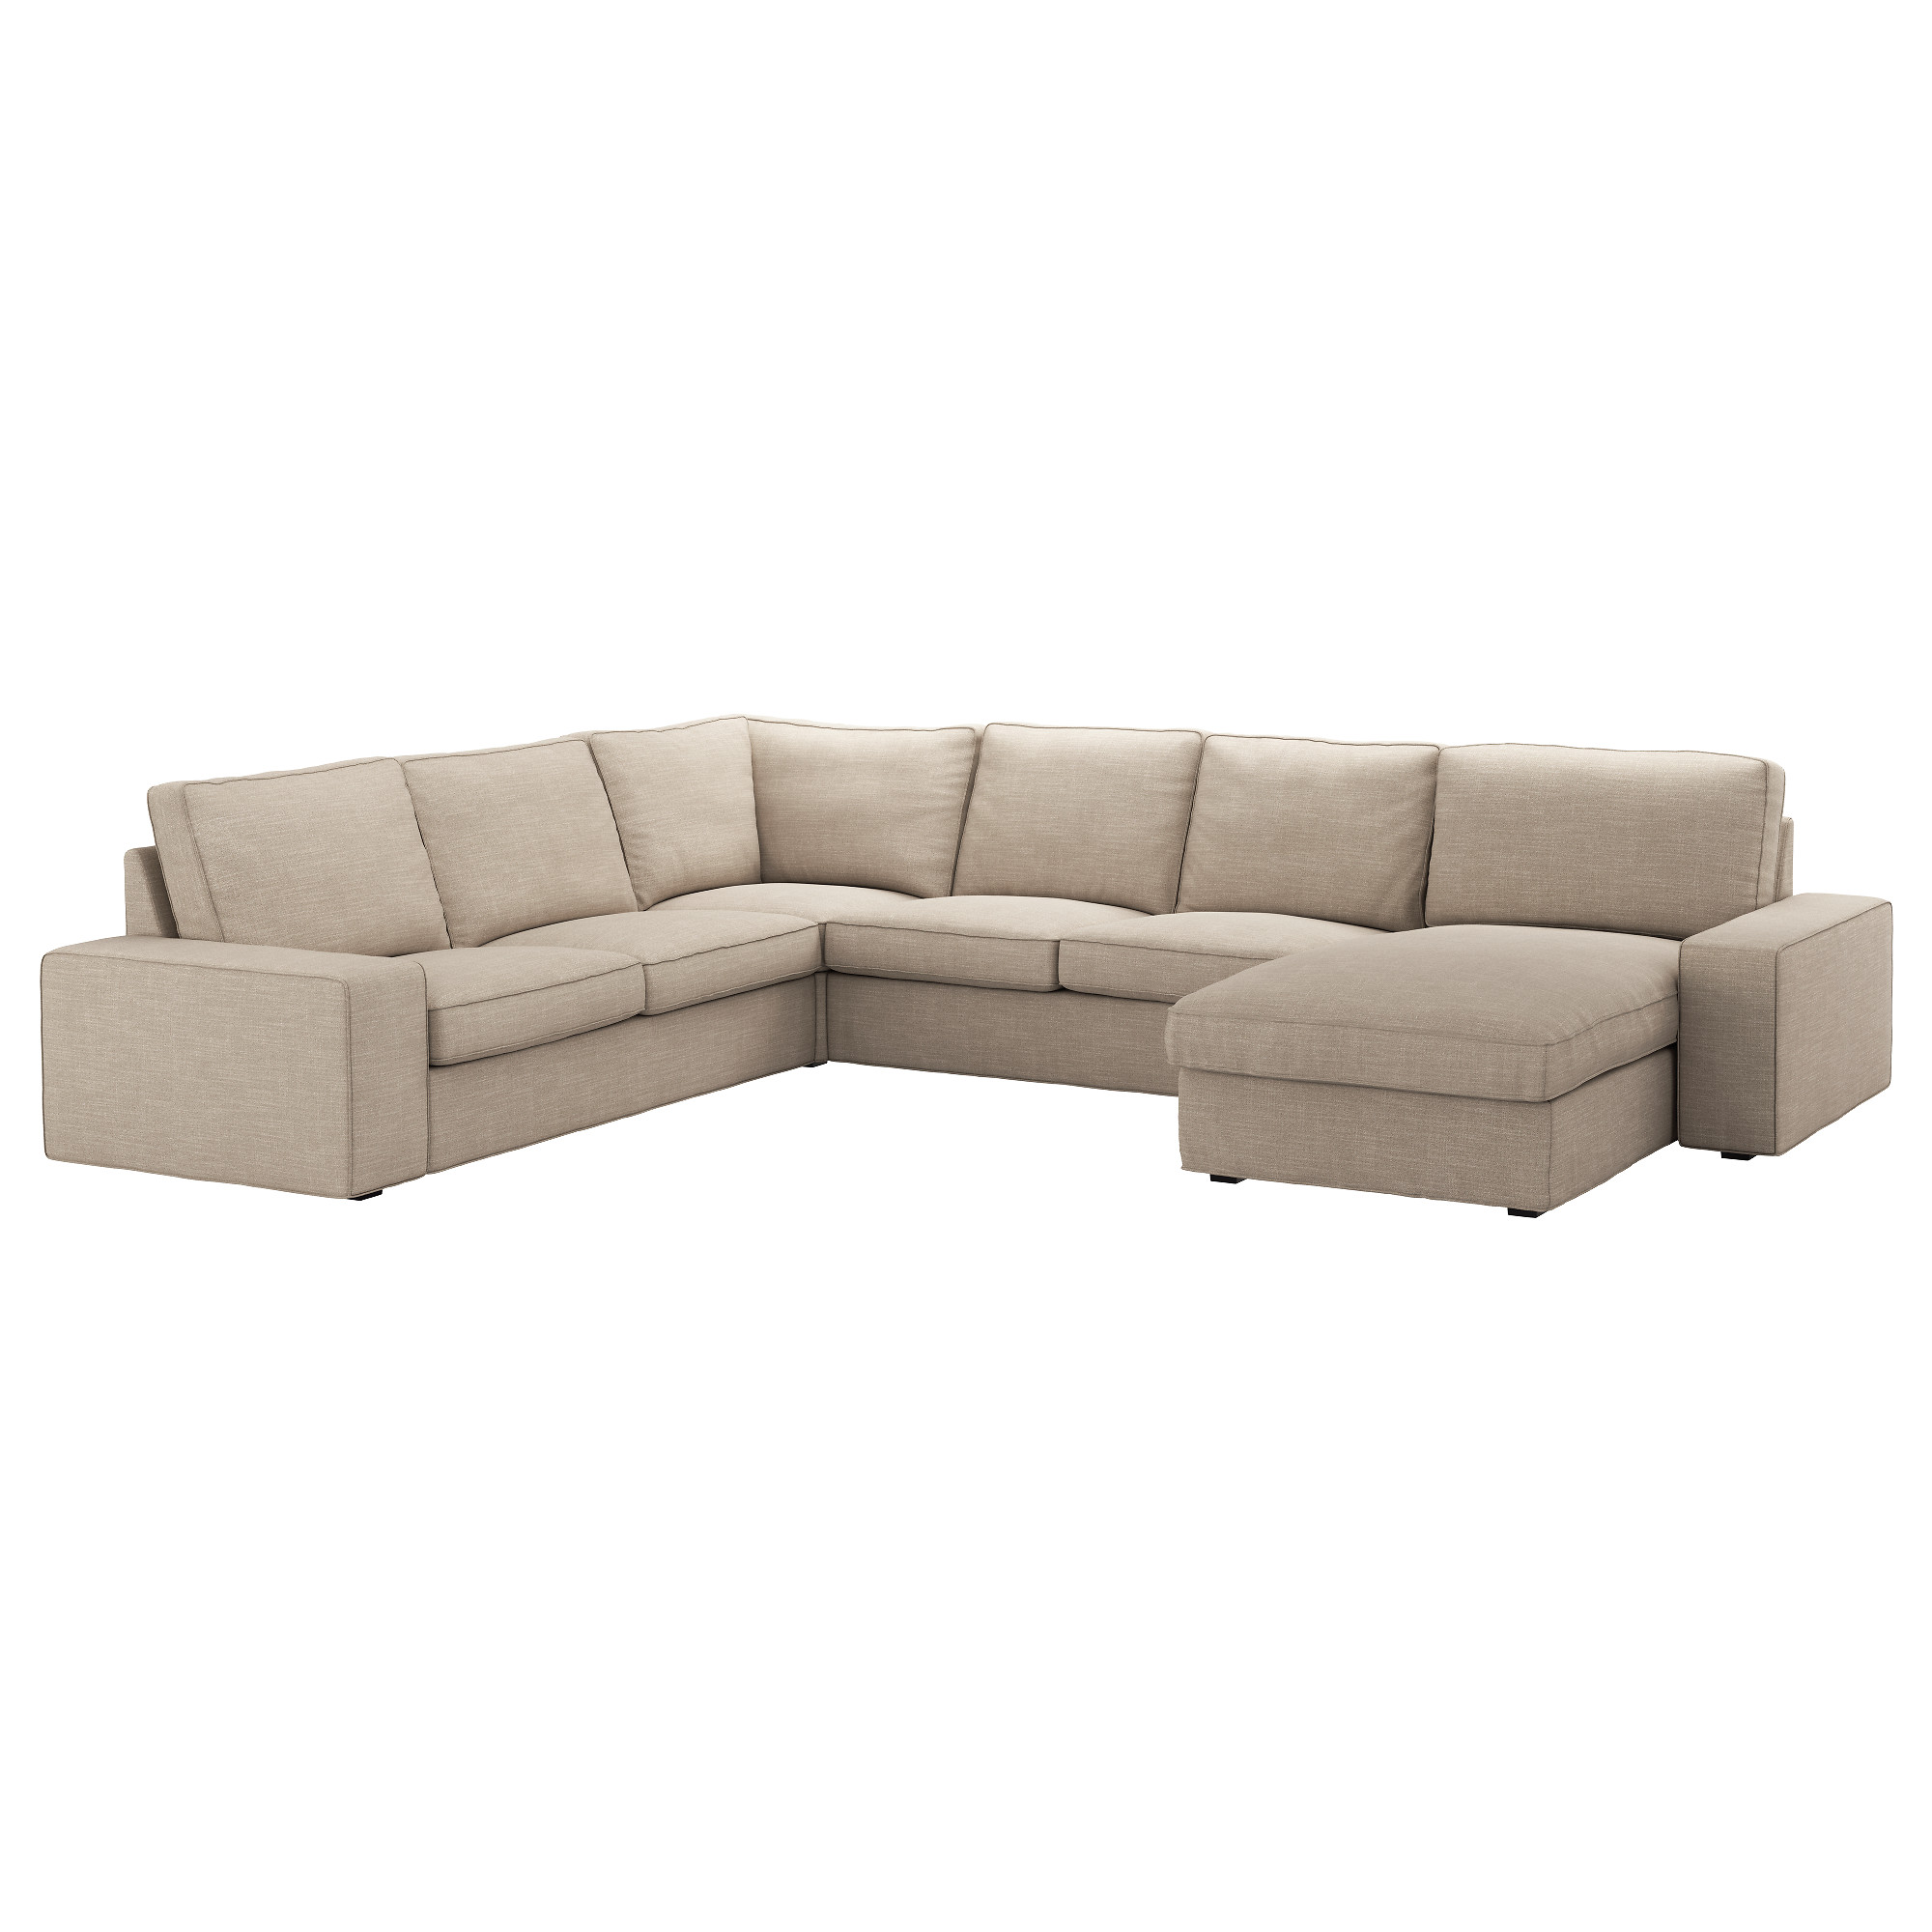 Kivik Sectional 5 Seat Corner With Chaise Hillared Anthracite Ikea